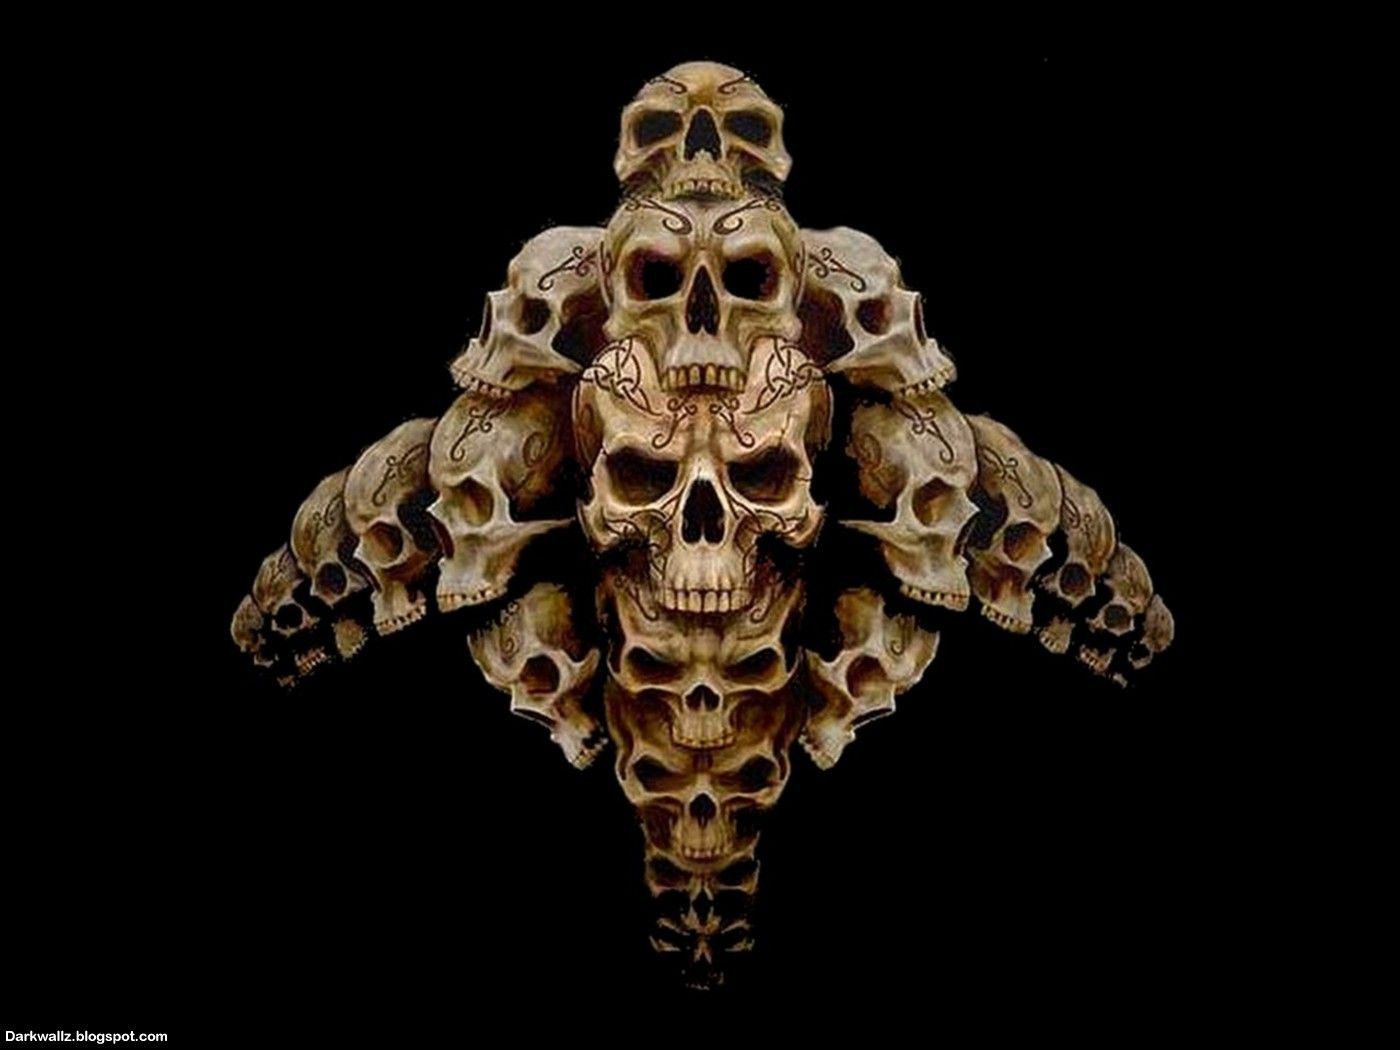 Scary wallpapers - Scary skull backgrounds ...